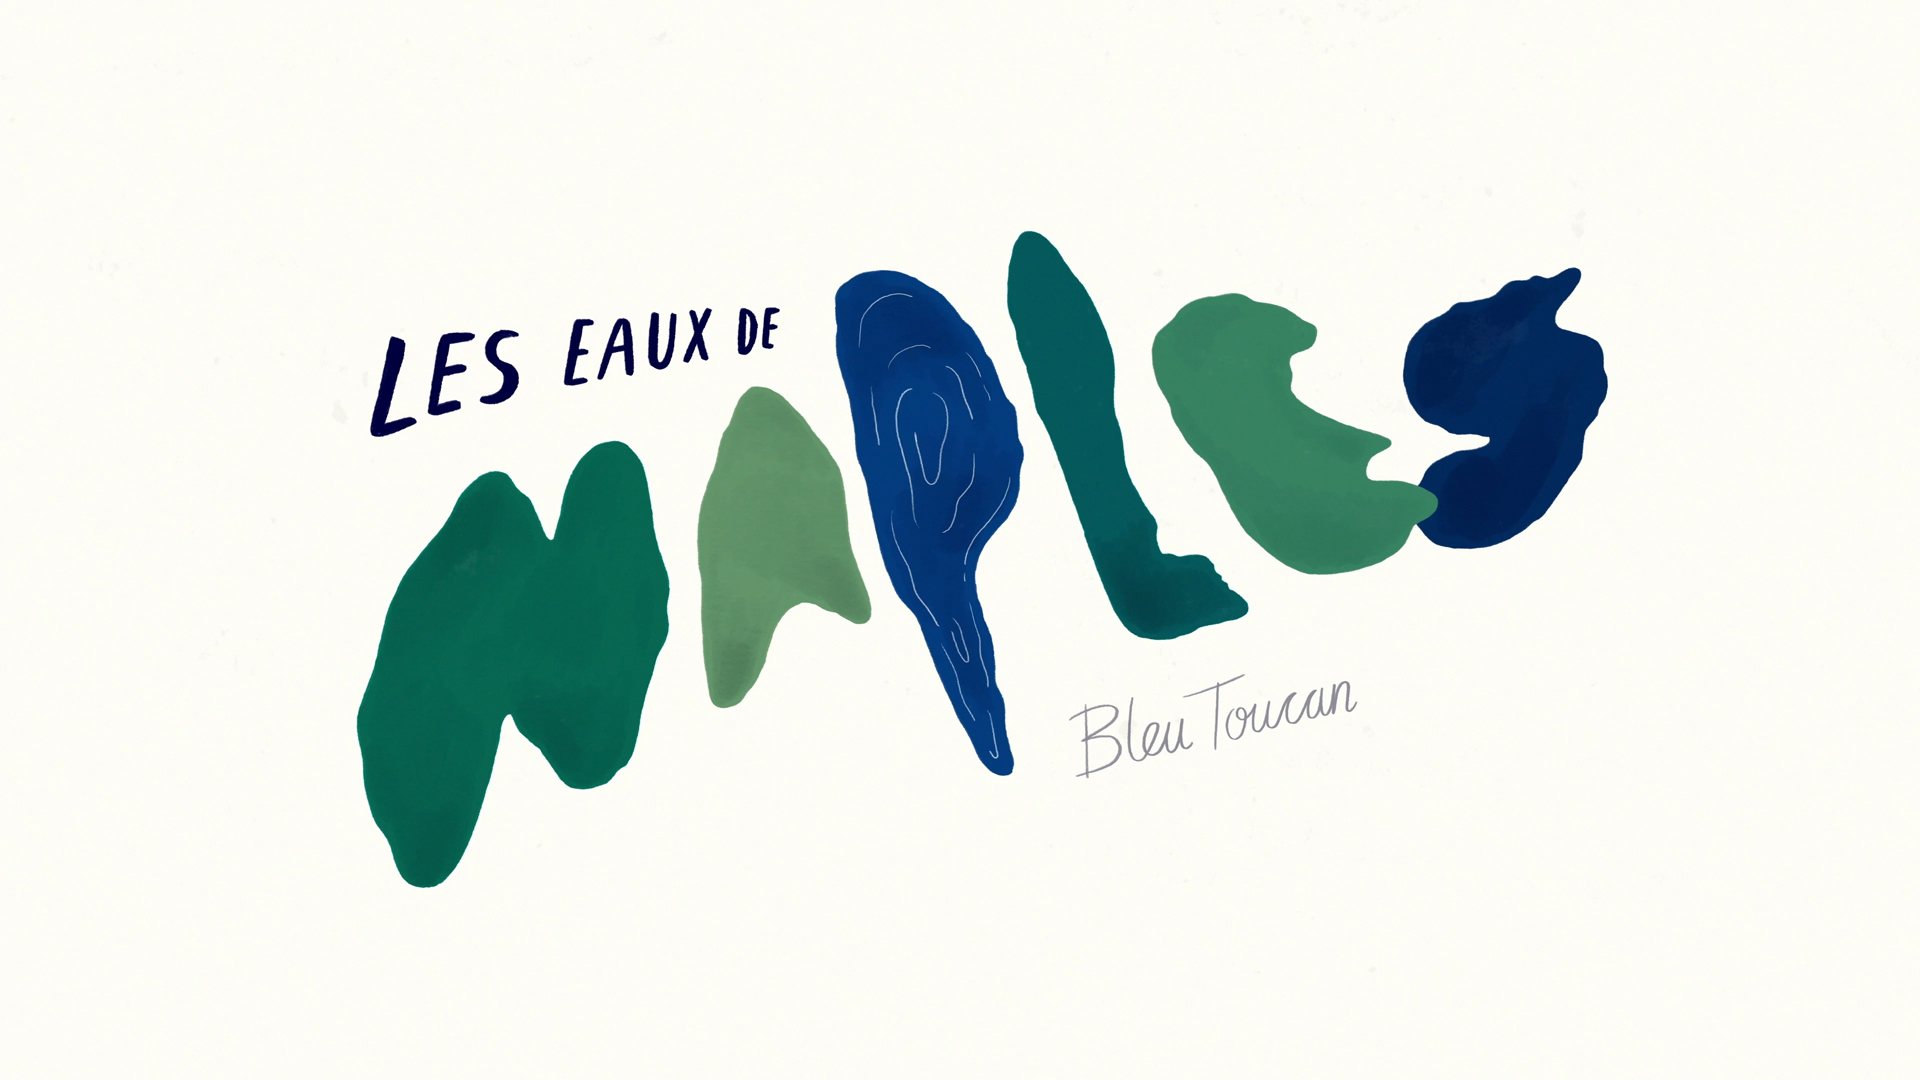 Les Eaux de Naples titles